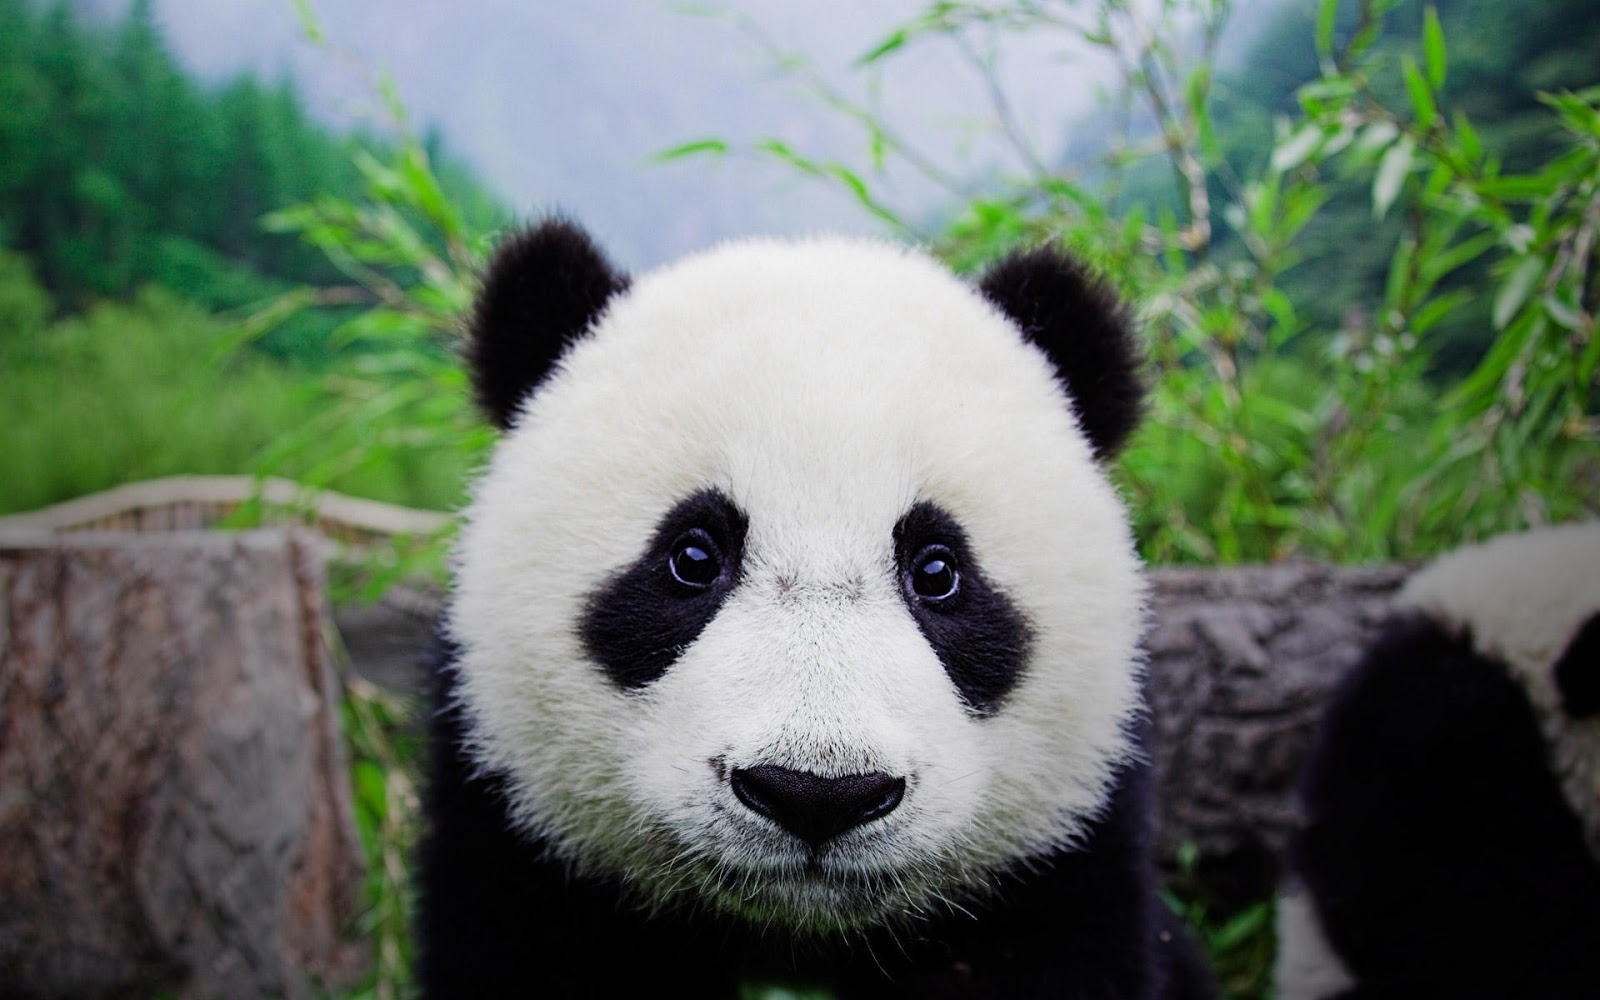 panda pictures hd wallpapers - photo #9